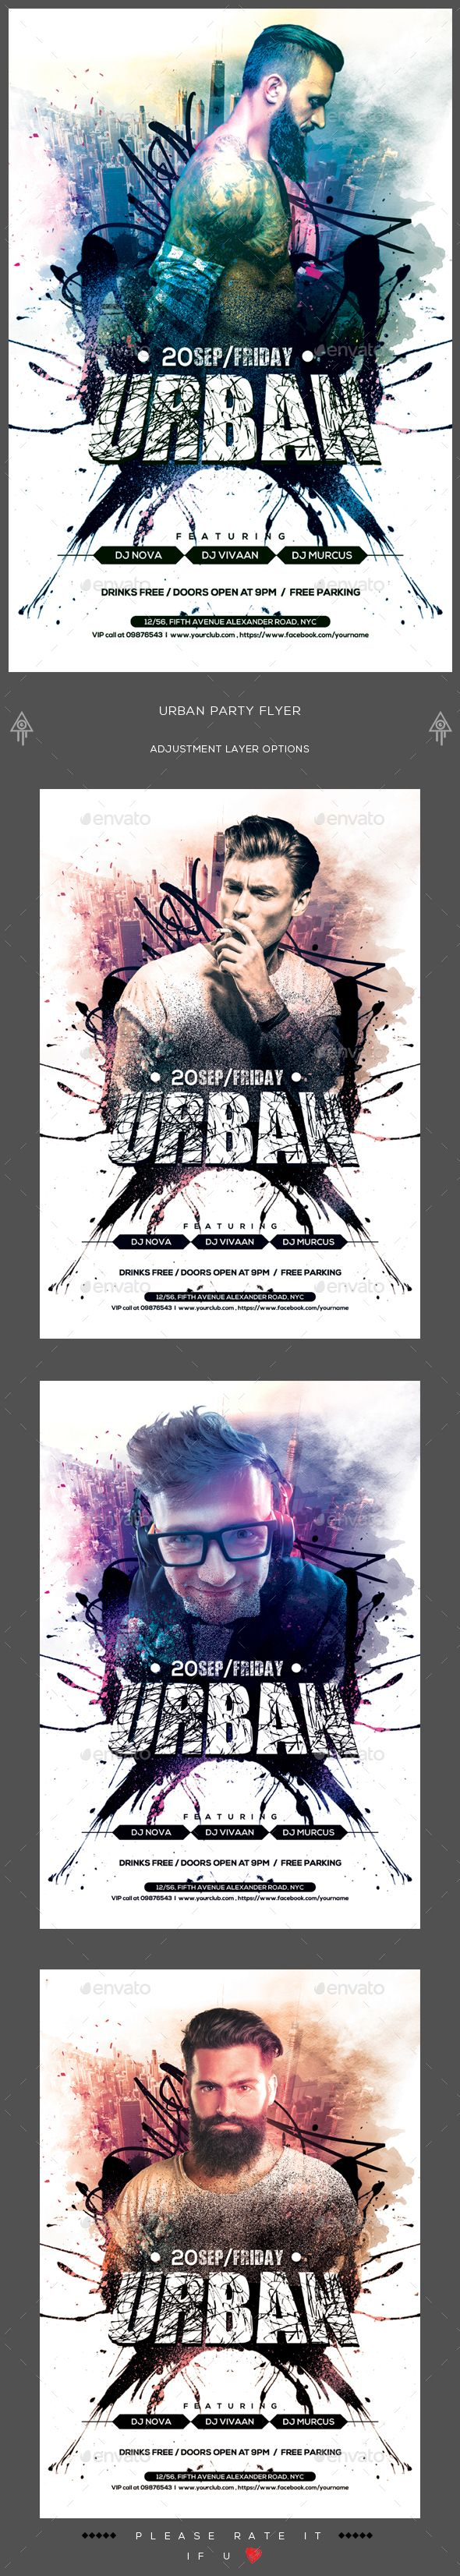 Urban Party Flyer  — PSD Template #models and bottles #night club flyer • Download ➝ https://graphicriver.net/item/urban-party-flyer/17999263?ref=pxcr